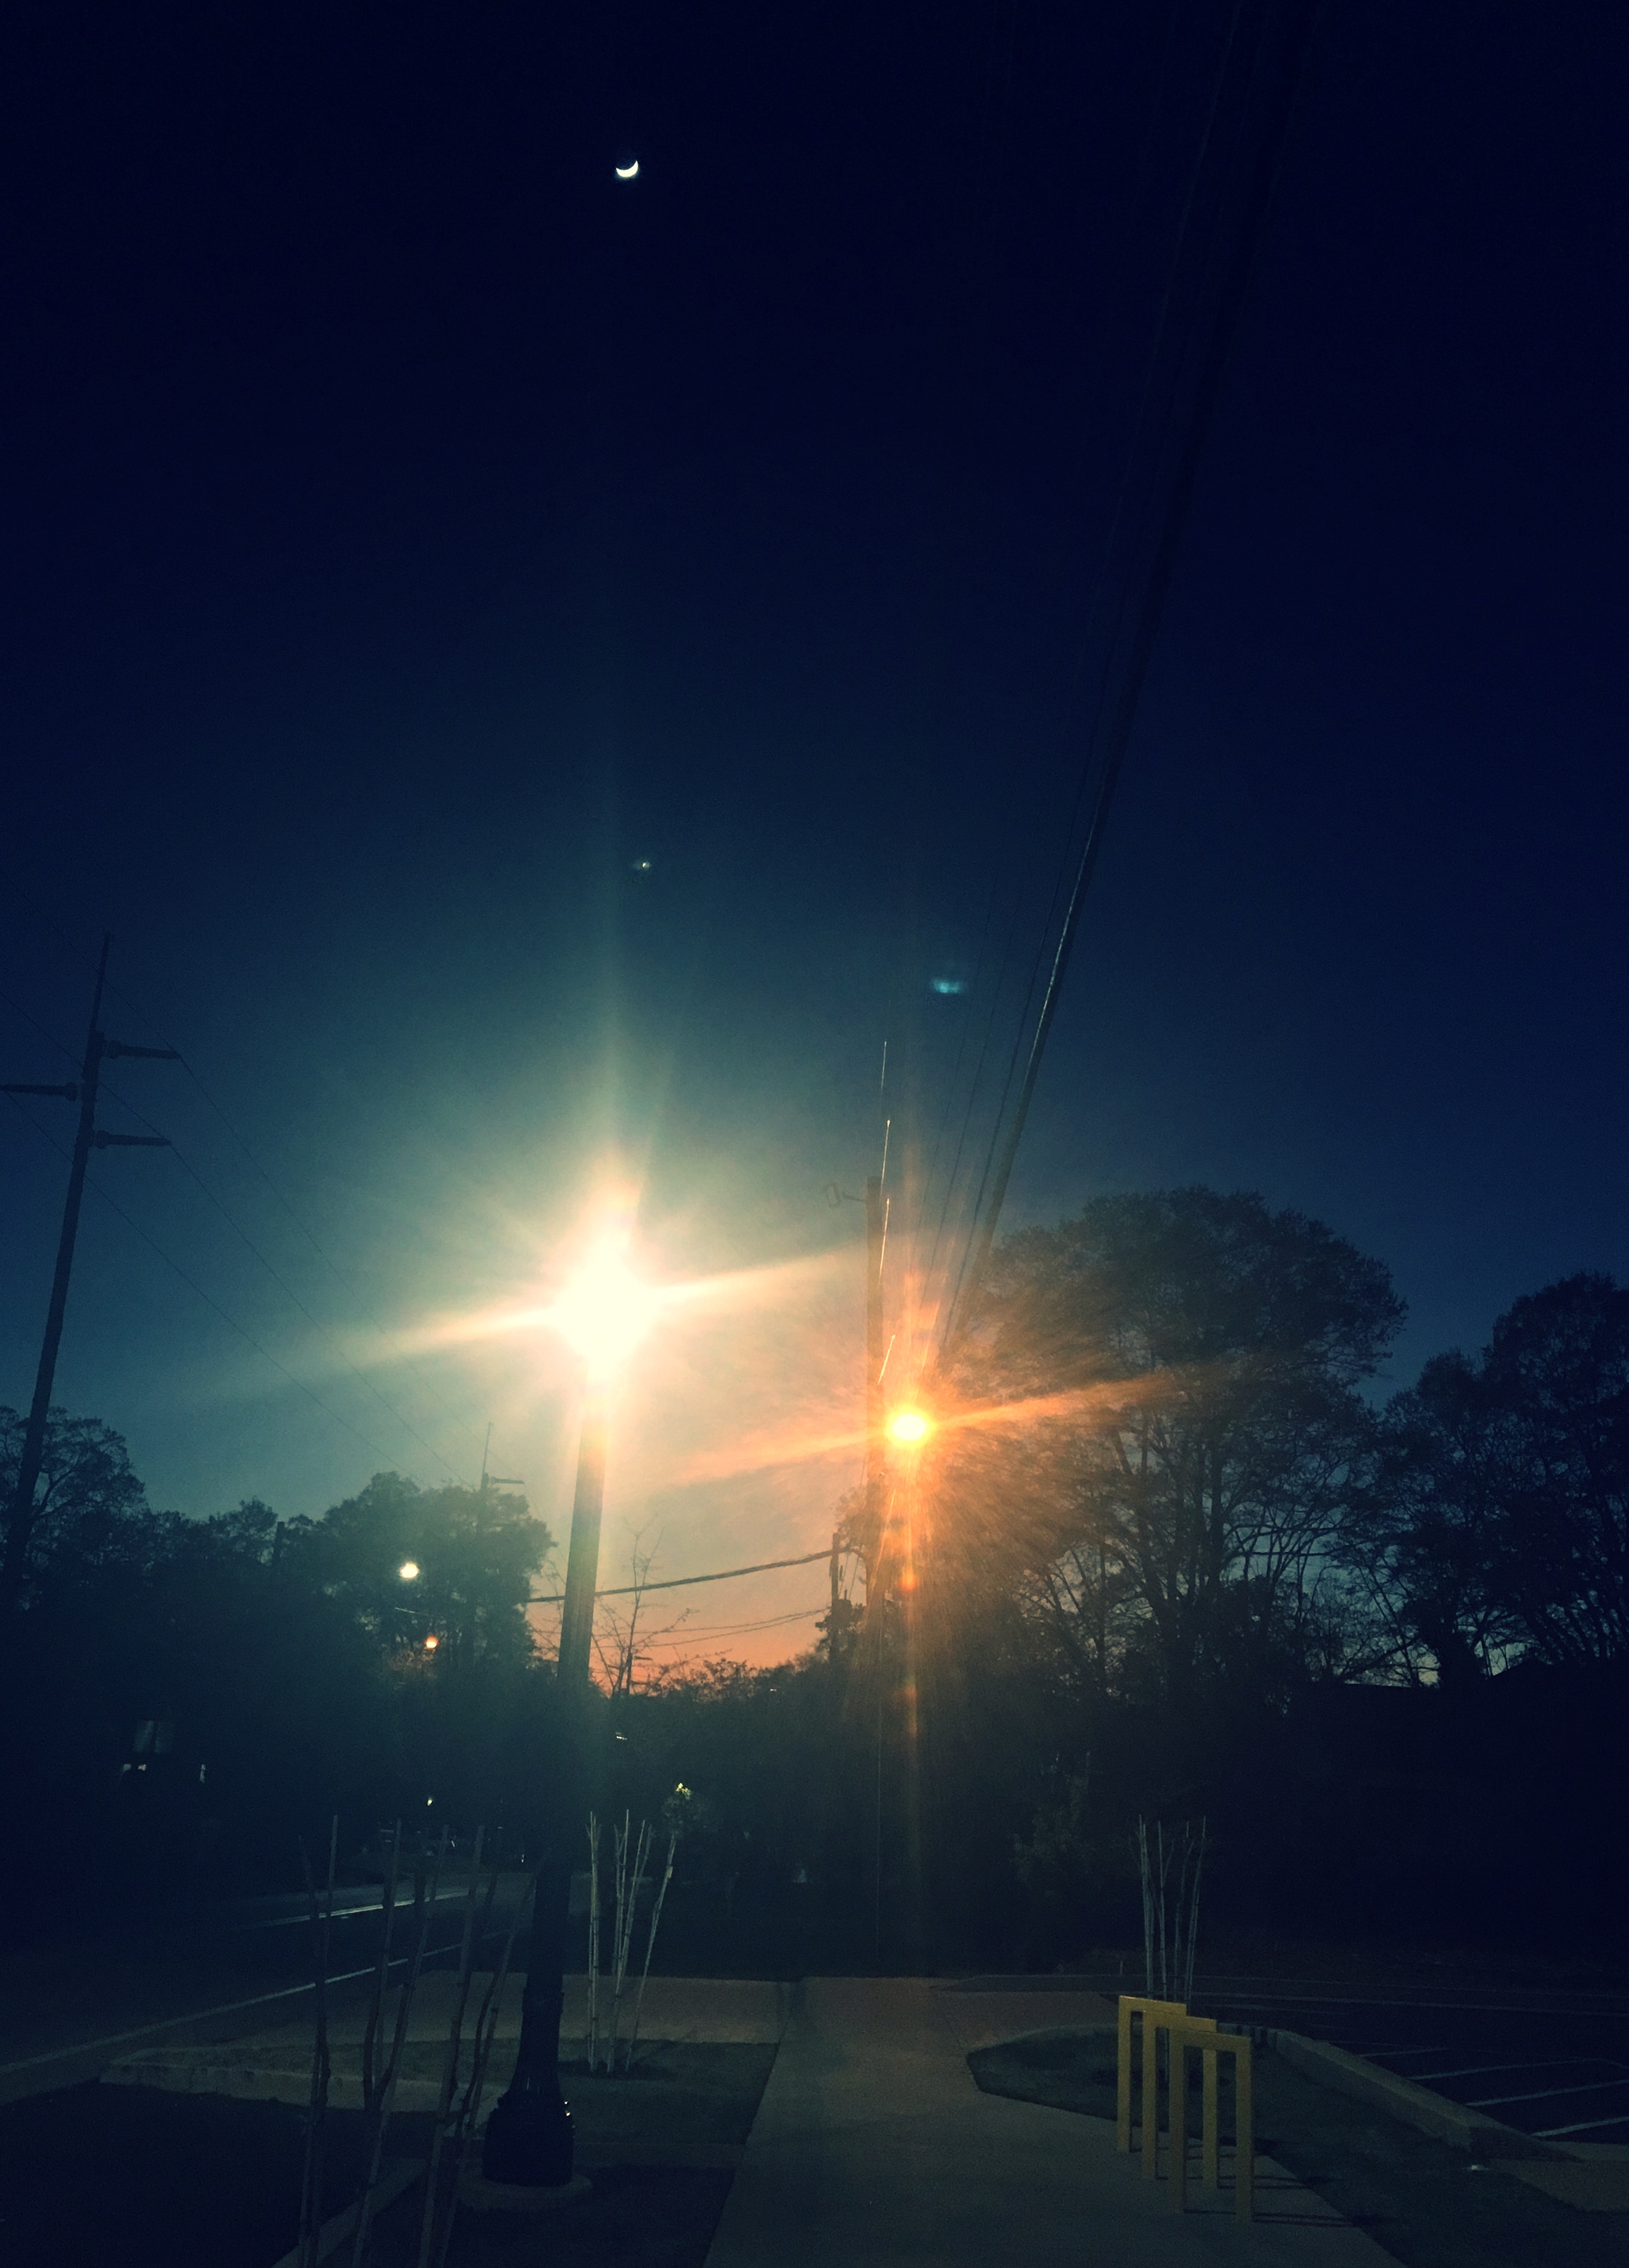 You can have the sunset, the moonlight and the streetlight.